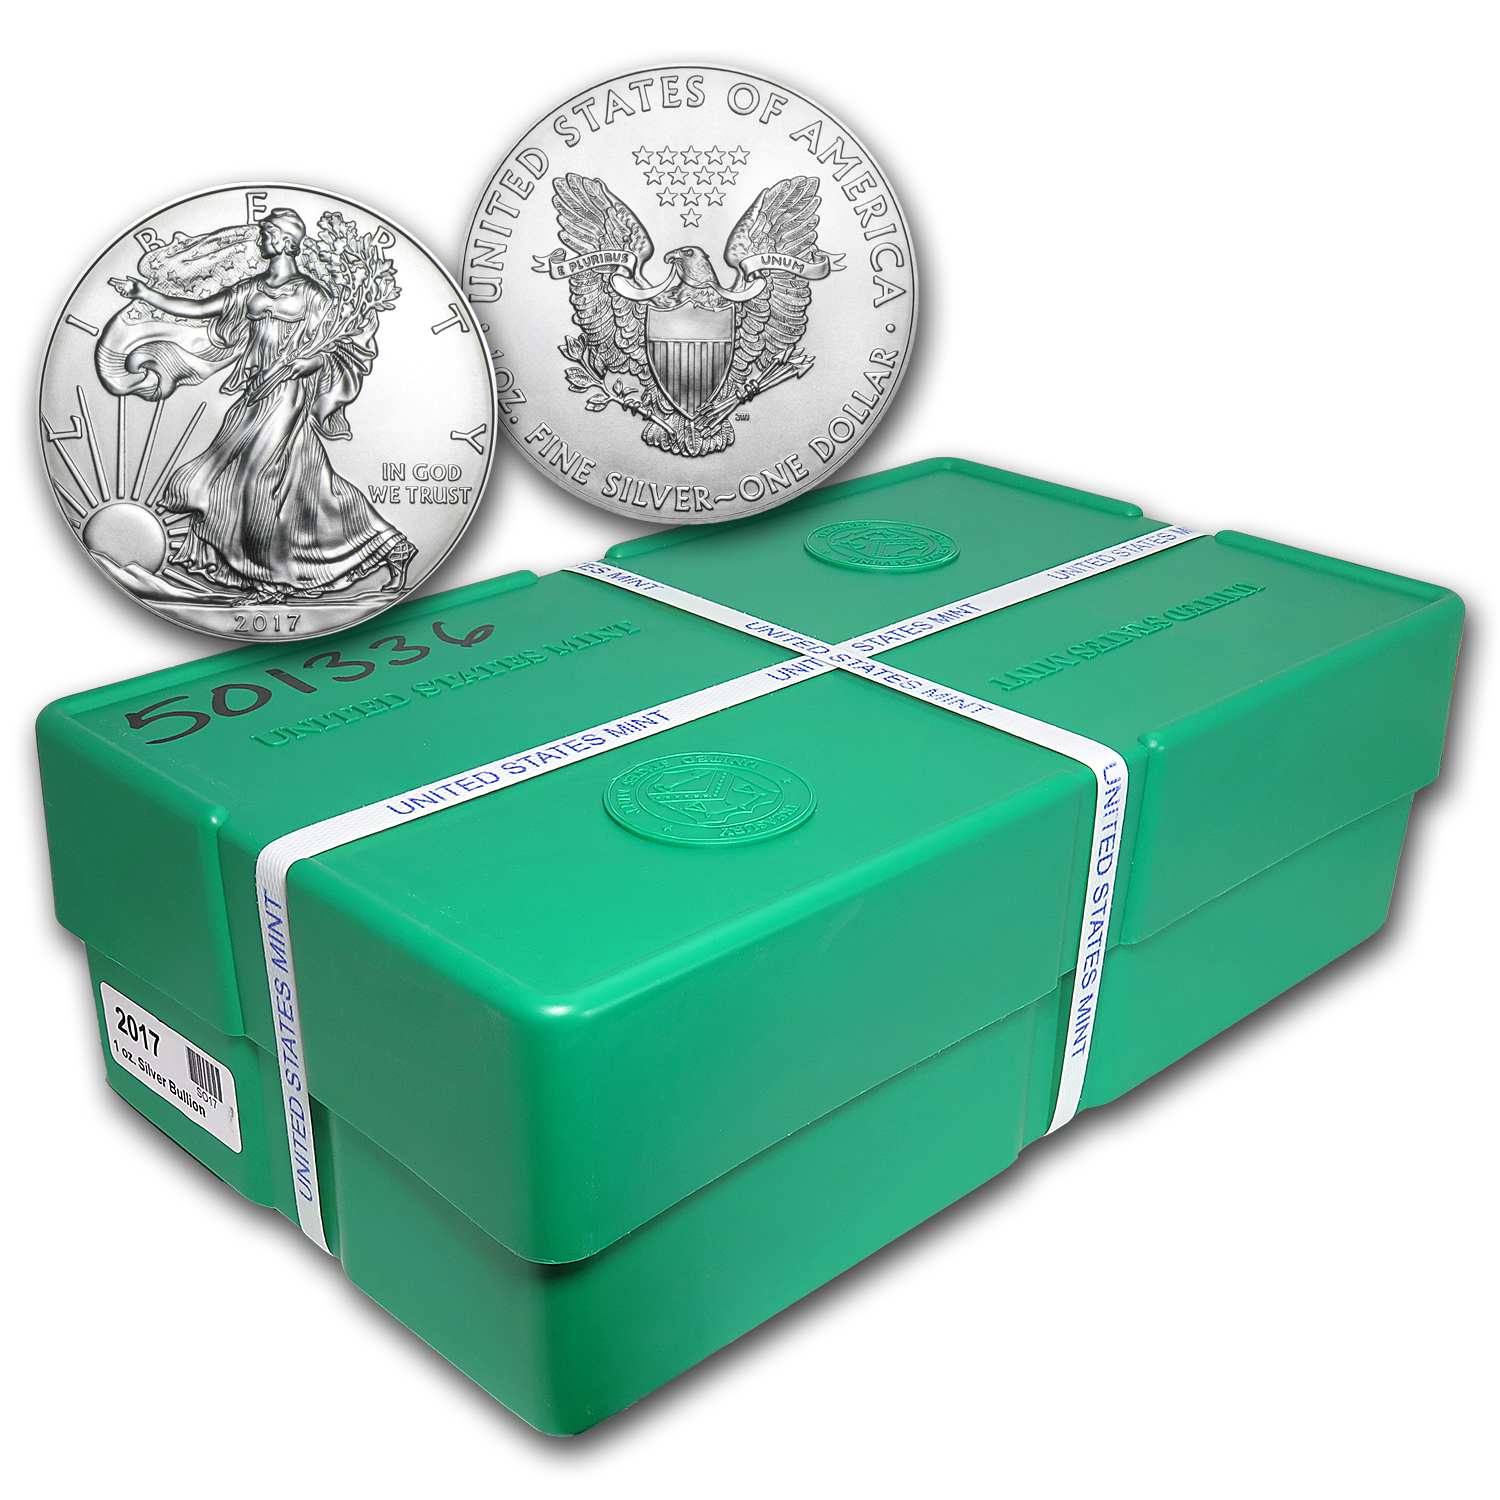 2017 (S) 500-Coin Silver American Eagle Monster Box